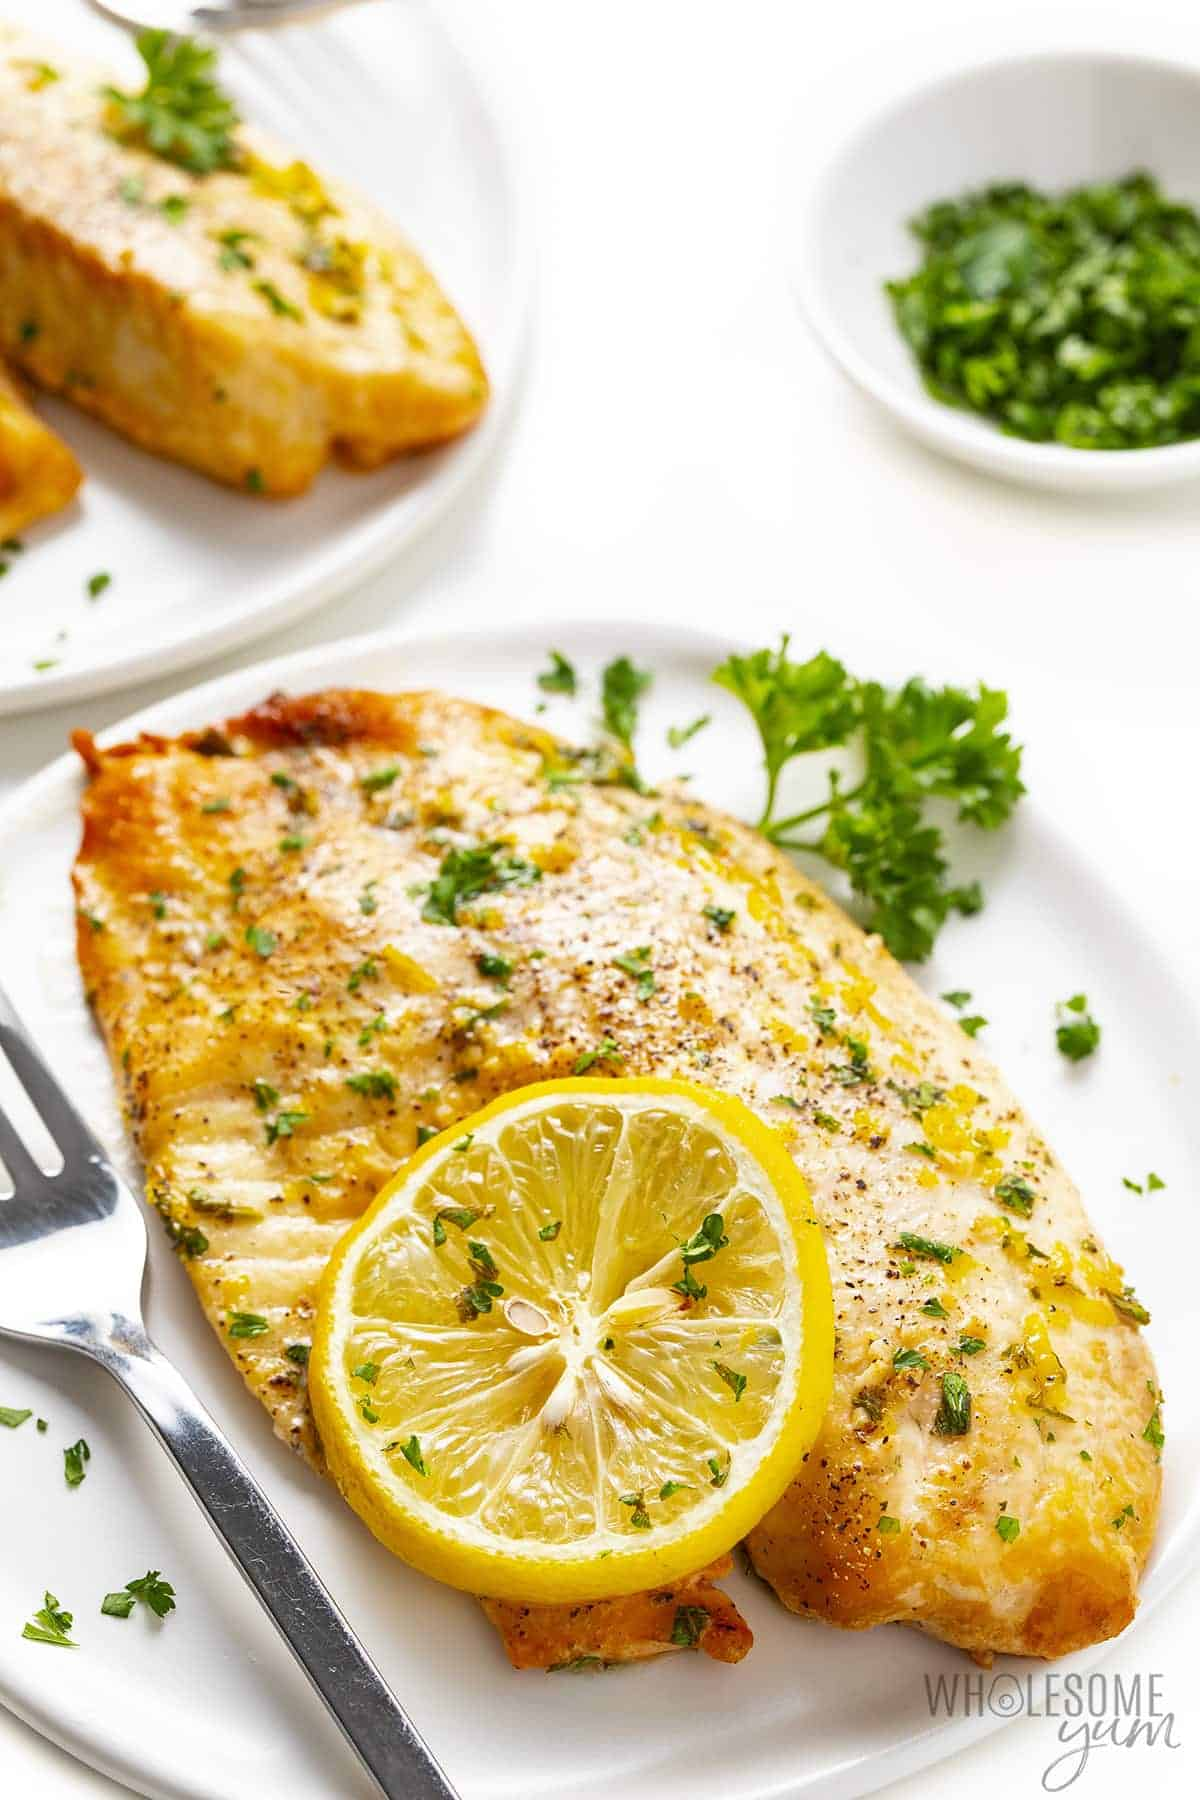 Plate with a piece of lemon butter tilapia